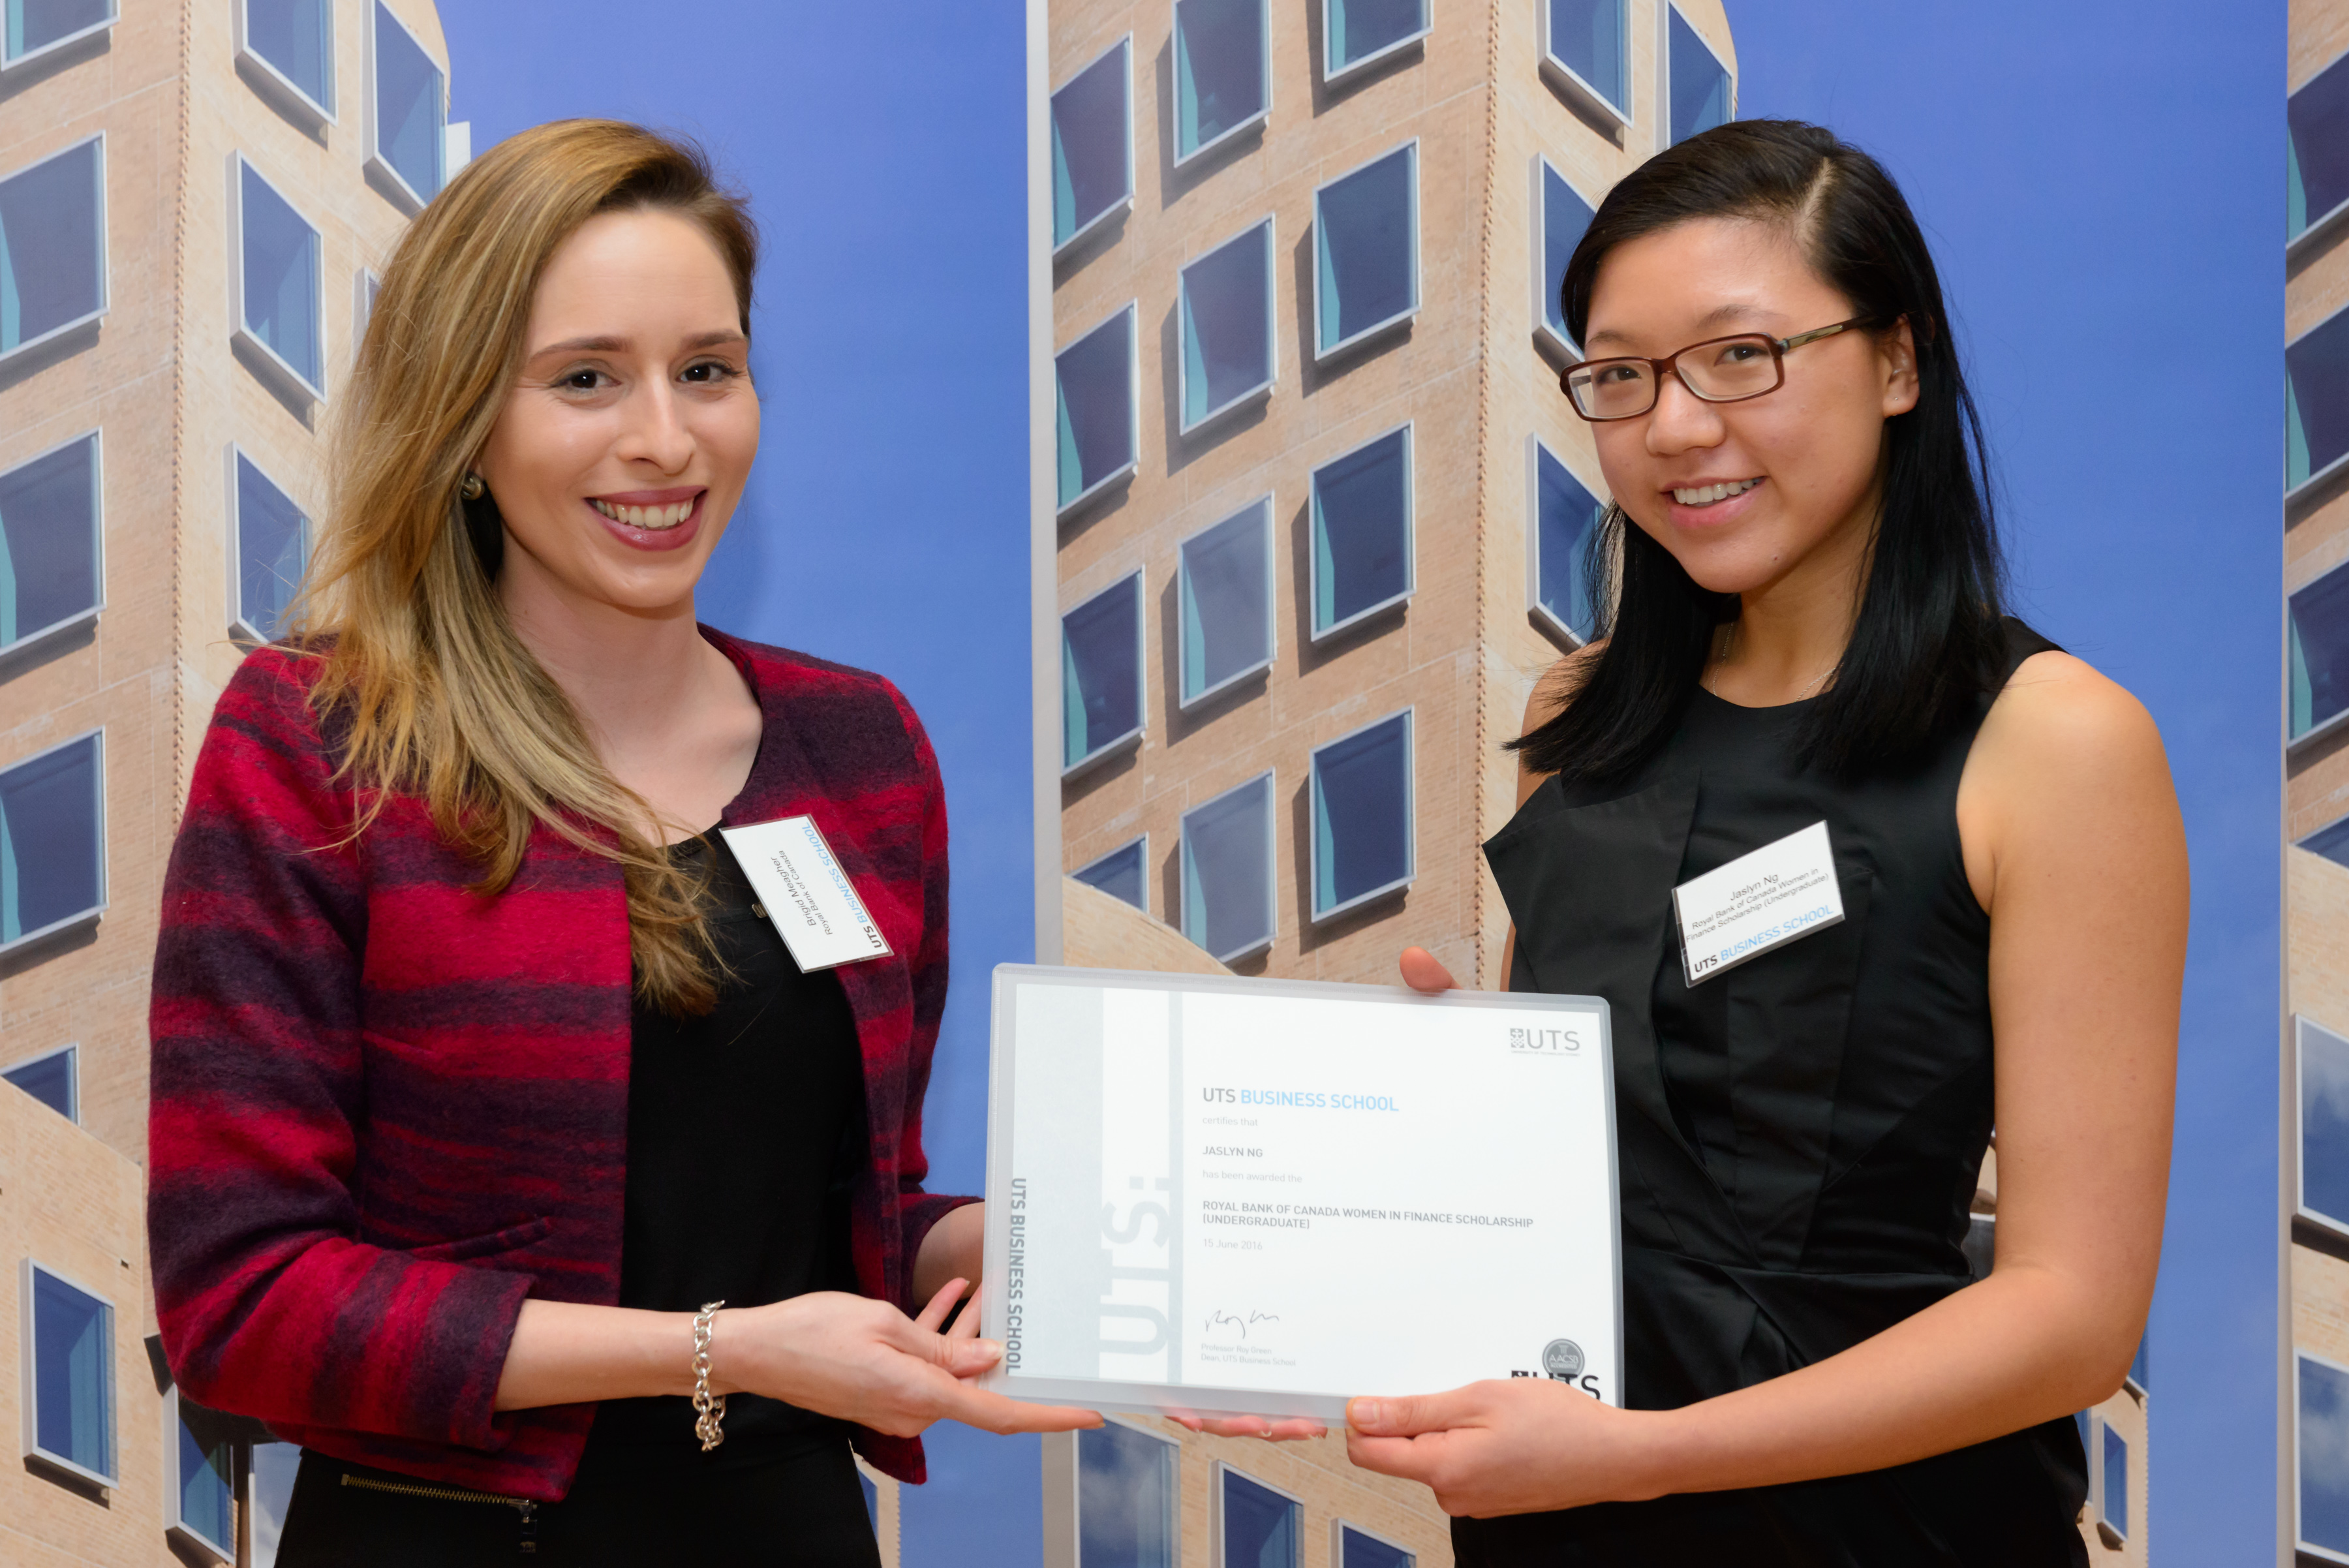 UTS Bachelor of Business student Jaslyn Ng with Royal Bank of Canada Head of HR Brigid Meagher.